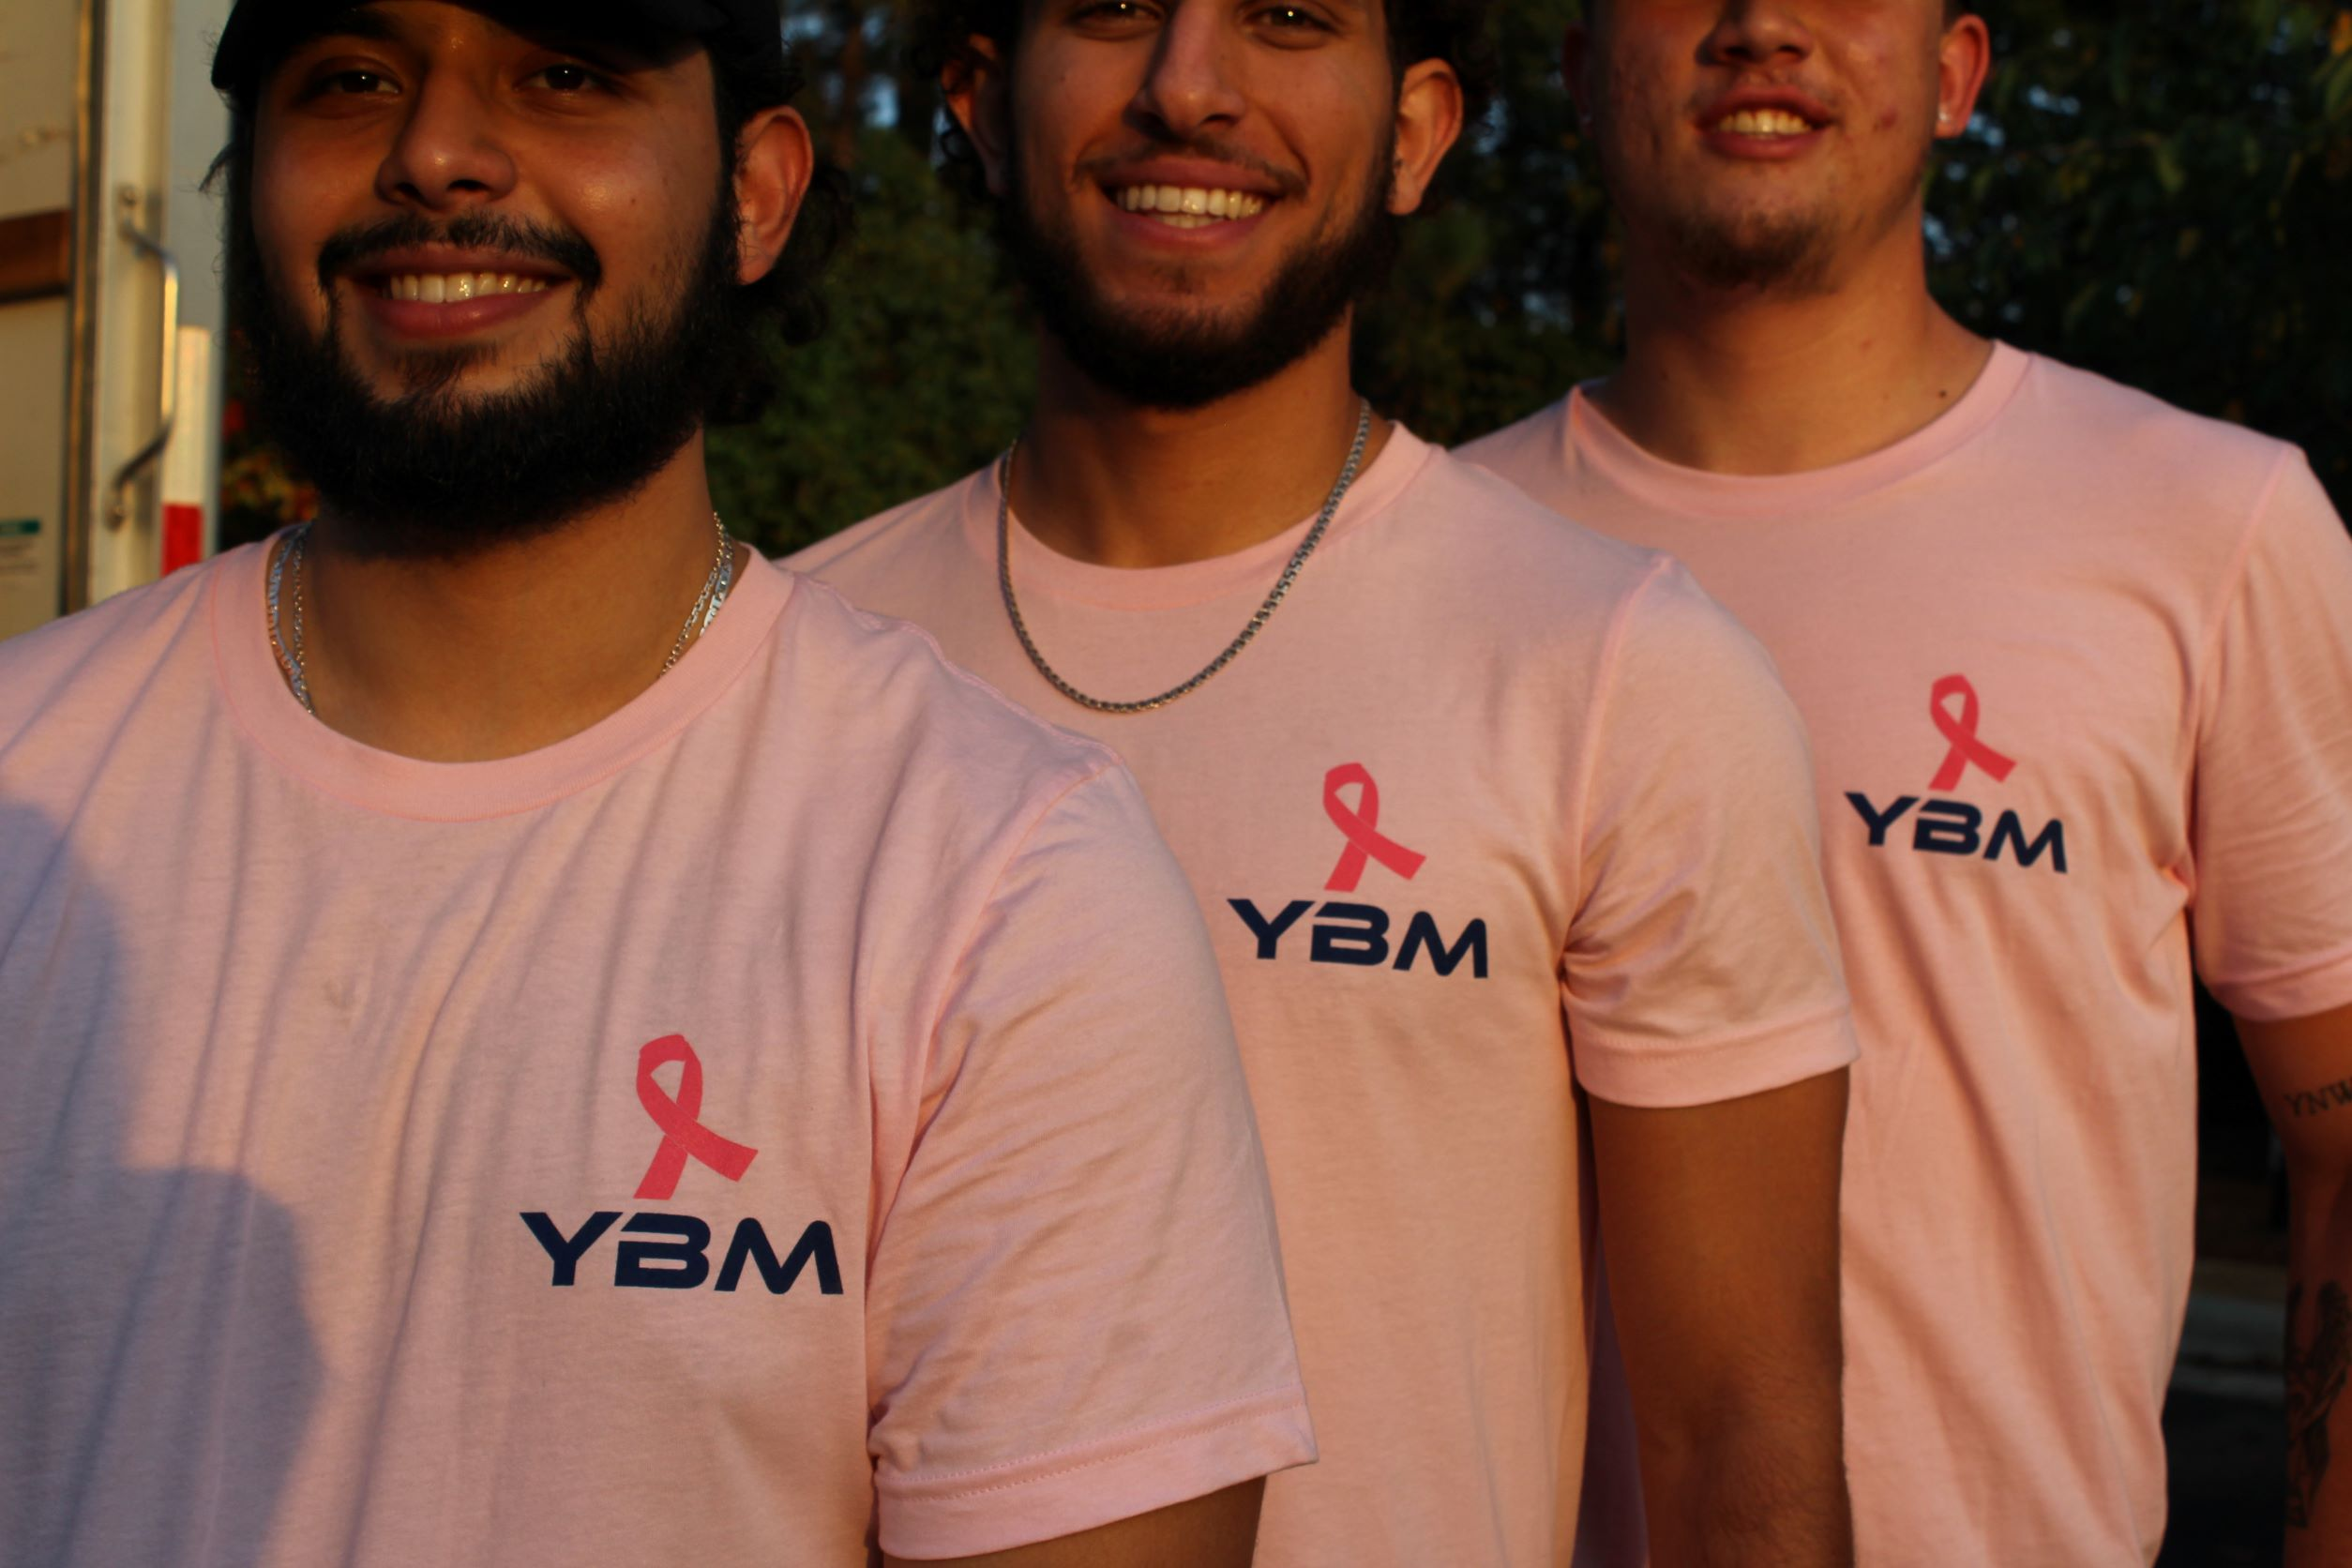 YBM crew leaders showing the breast cancer awareness merch